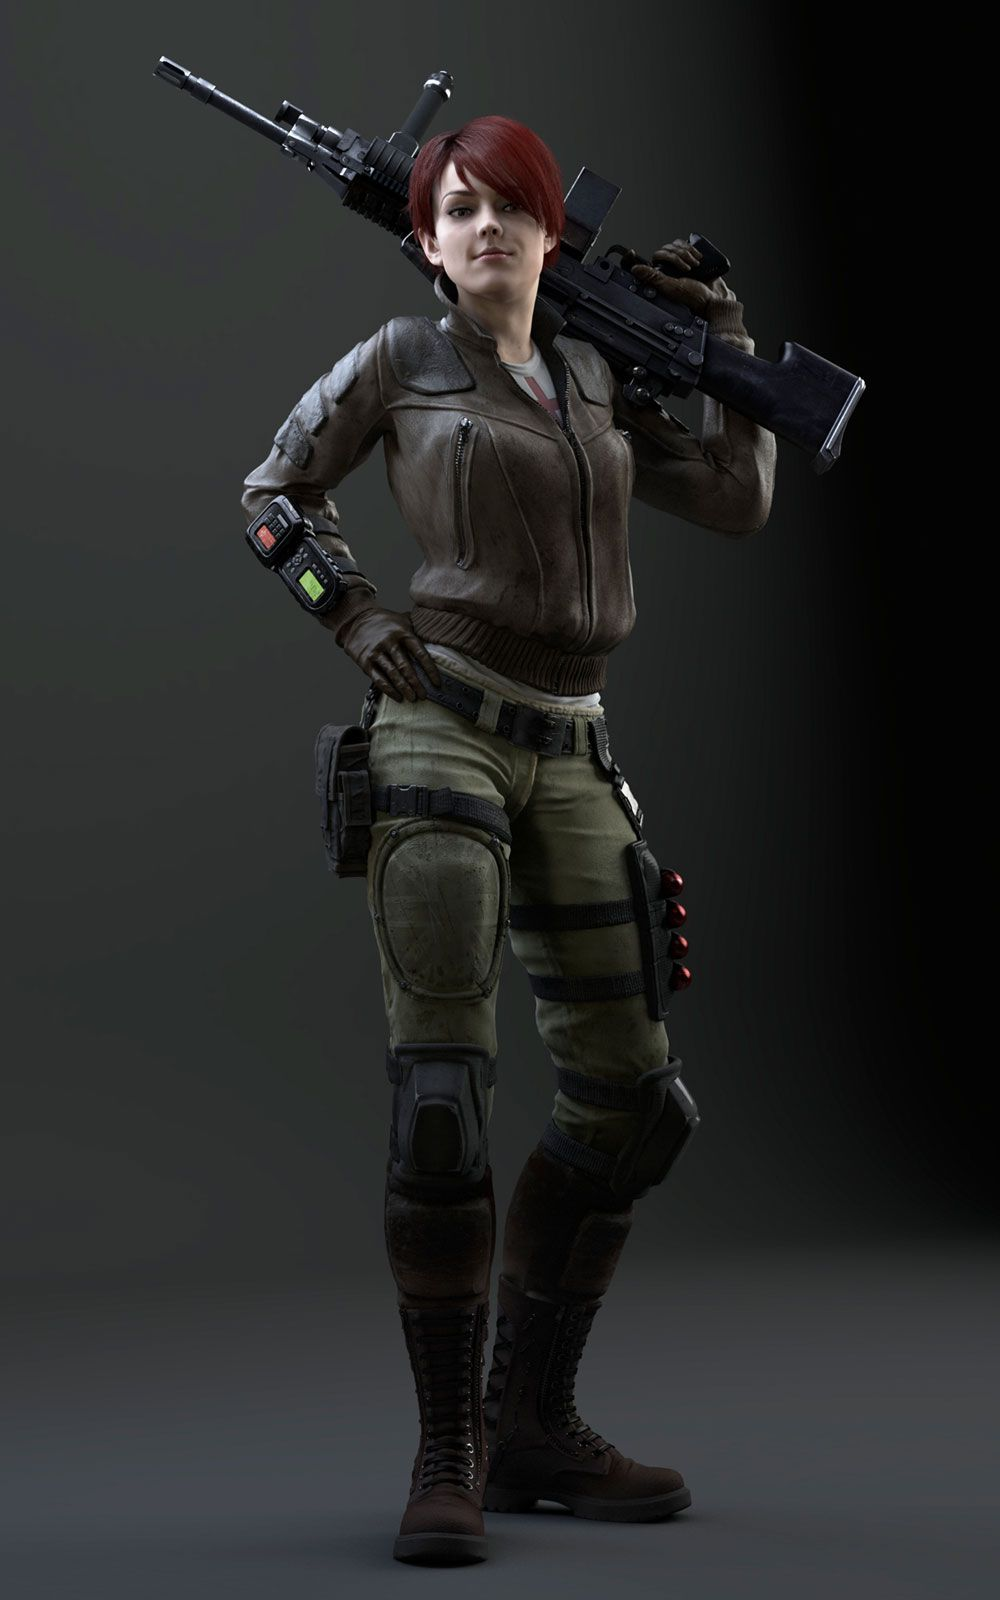 Tweed, Resident Evil: Operation Raccoon City